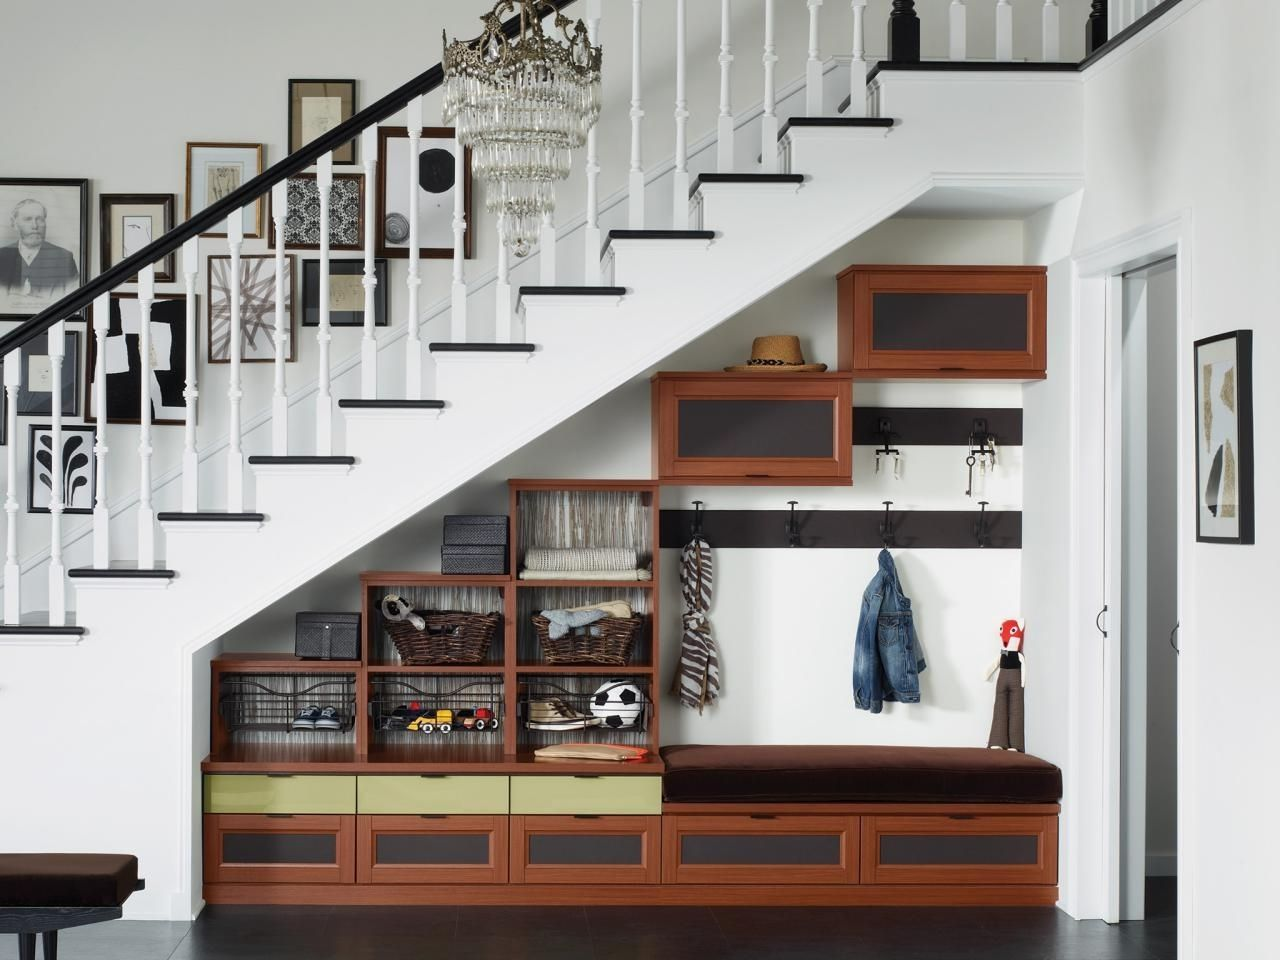 Pin By Suvy Suvy On Under The Stairs Pinterest Under